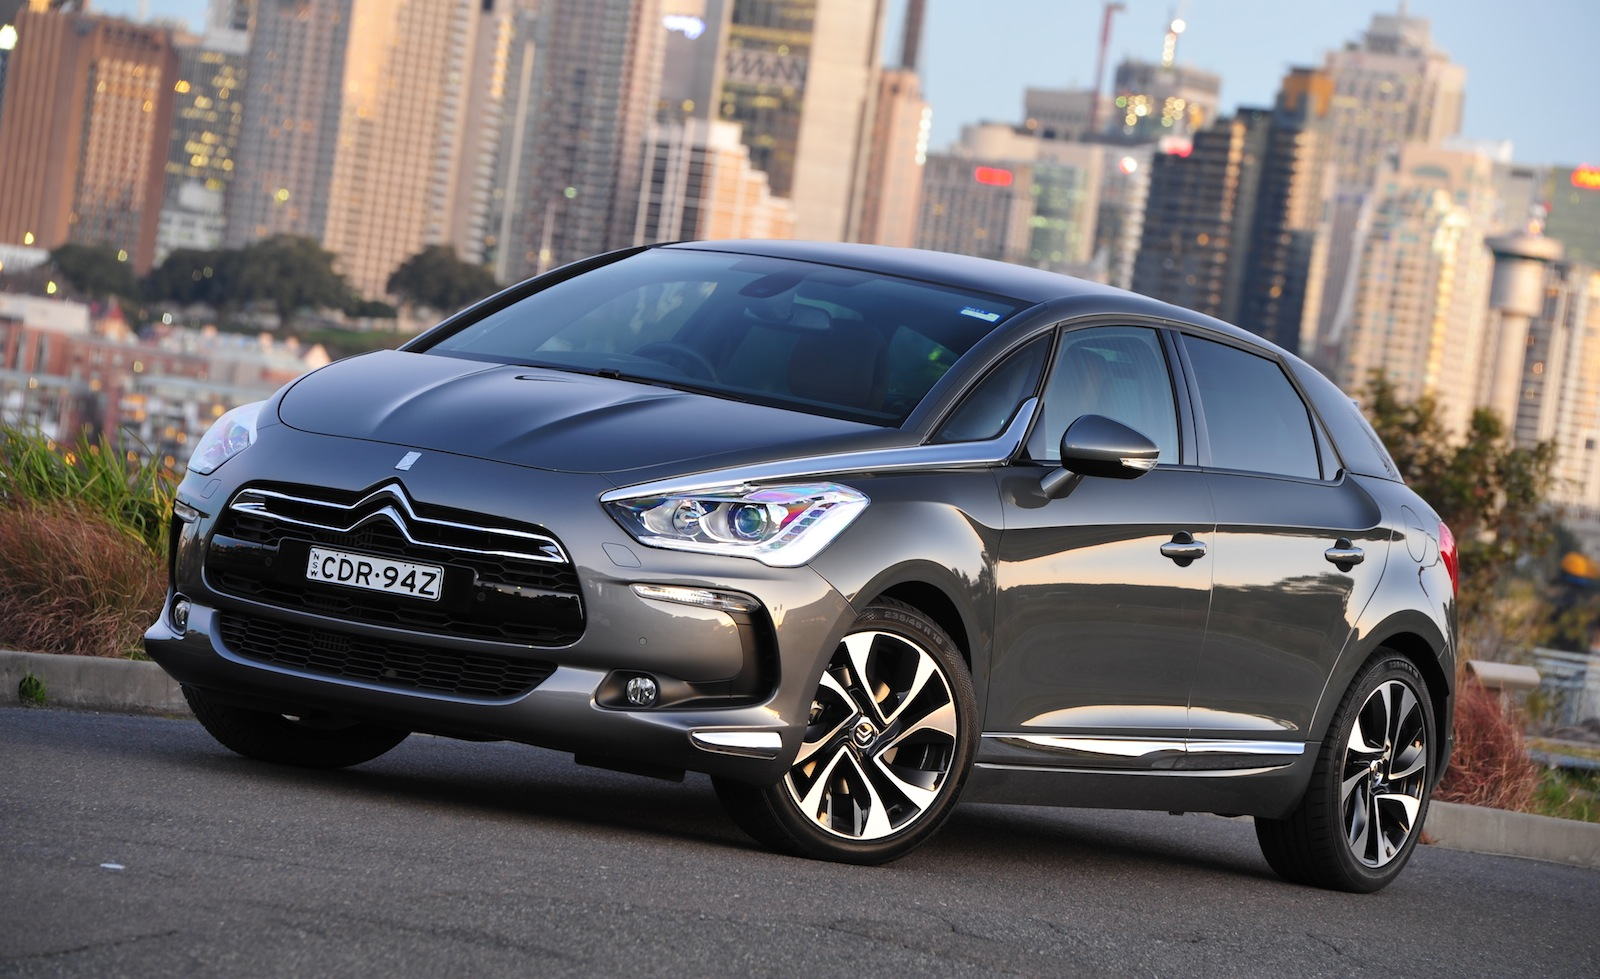 citroen ds5 french crossover wagon on sale in australia photos 1 of 10. Black Bedroom Furniture Sets. Home Design Ideas